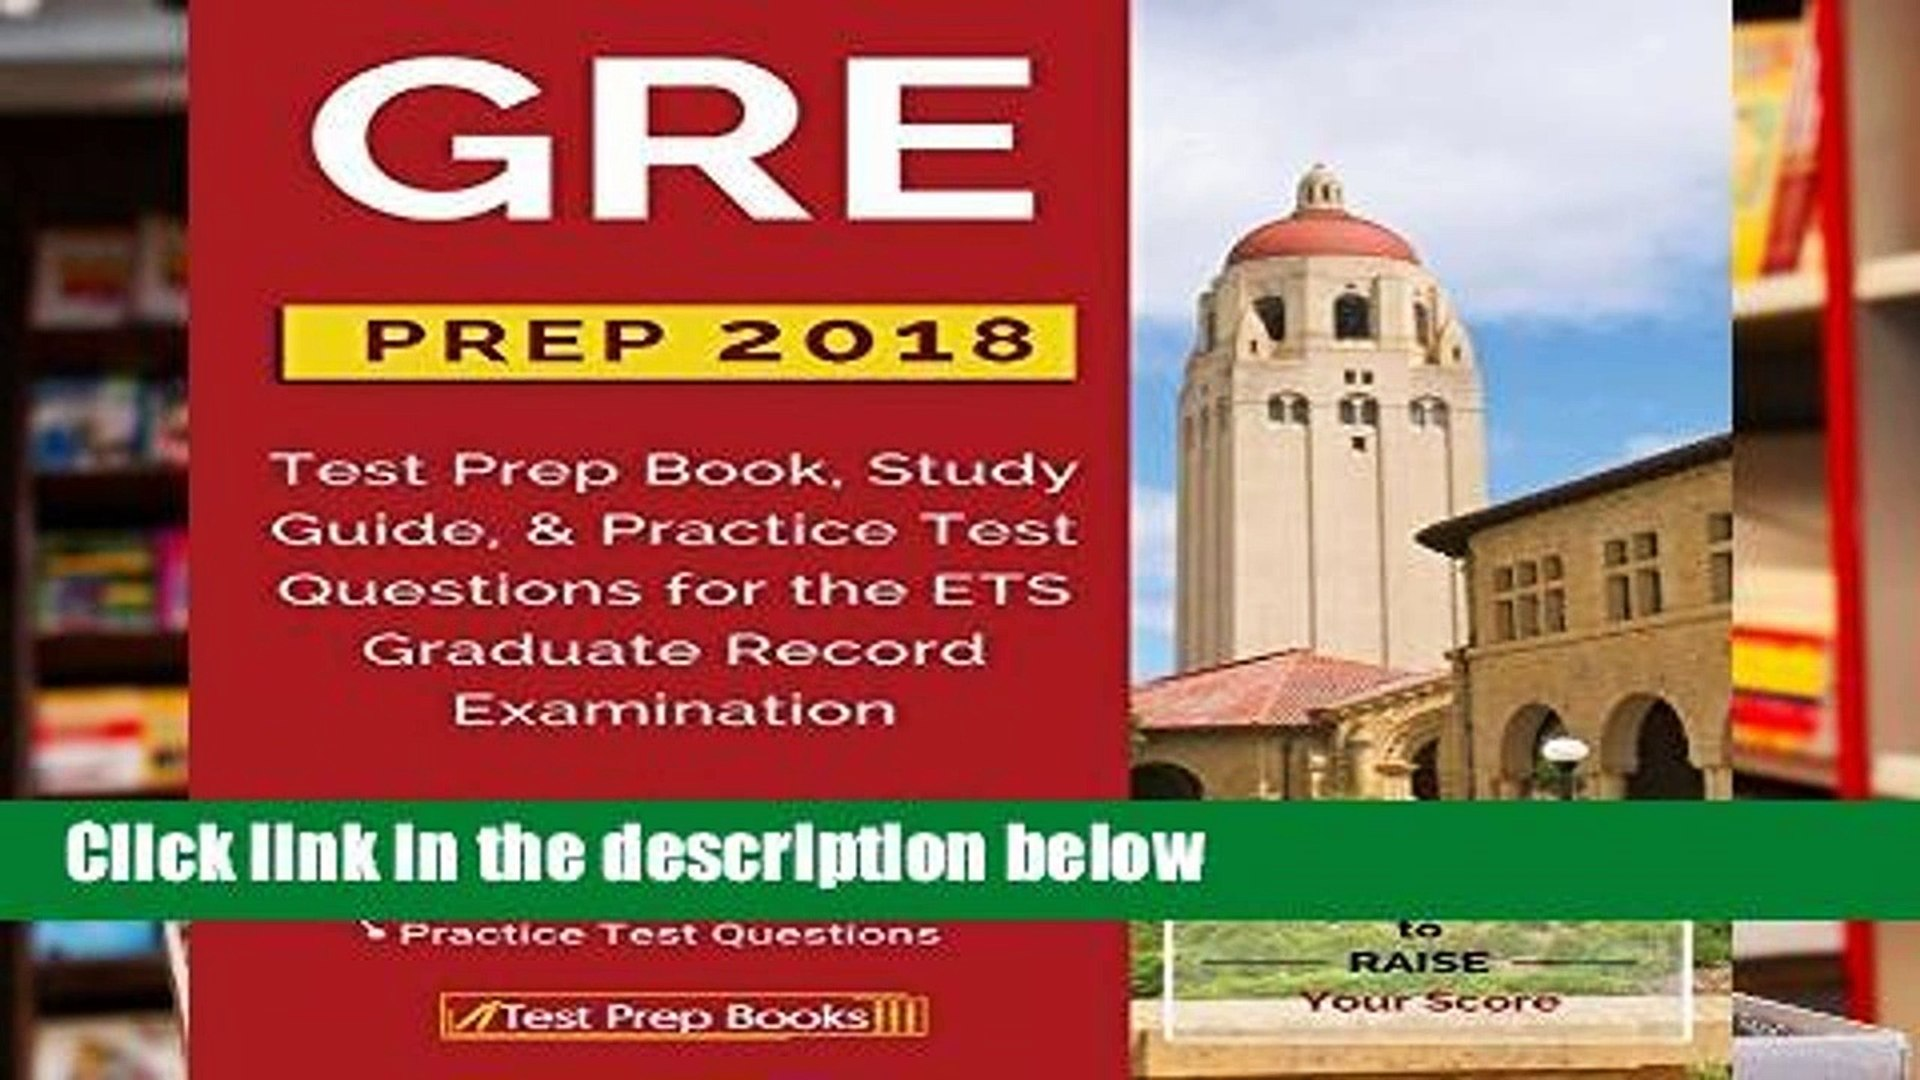 Gre Study Book >> D O W N L O A D P D F Gre Prep 2018 Test Prep Book Study Guide Practice Test Questions For